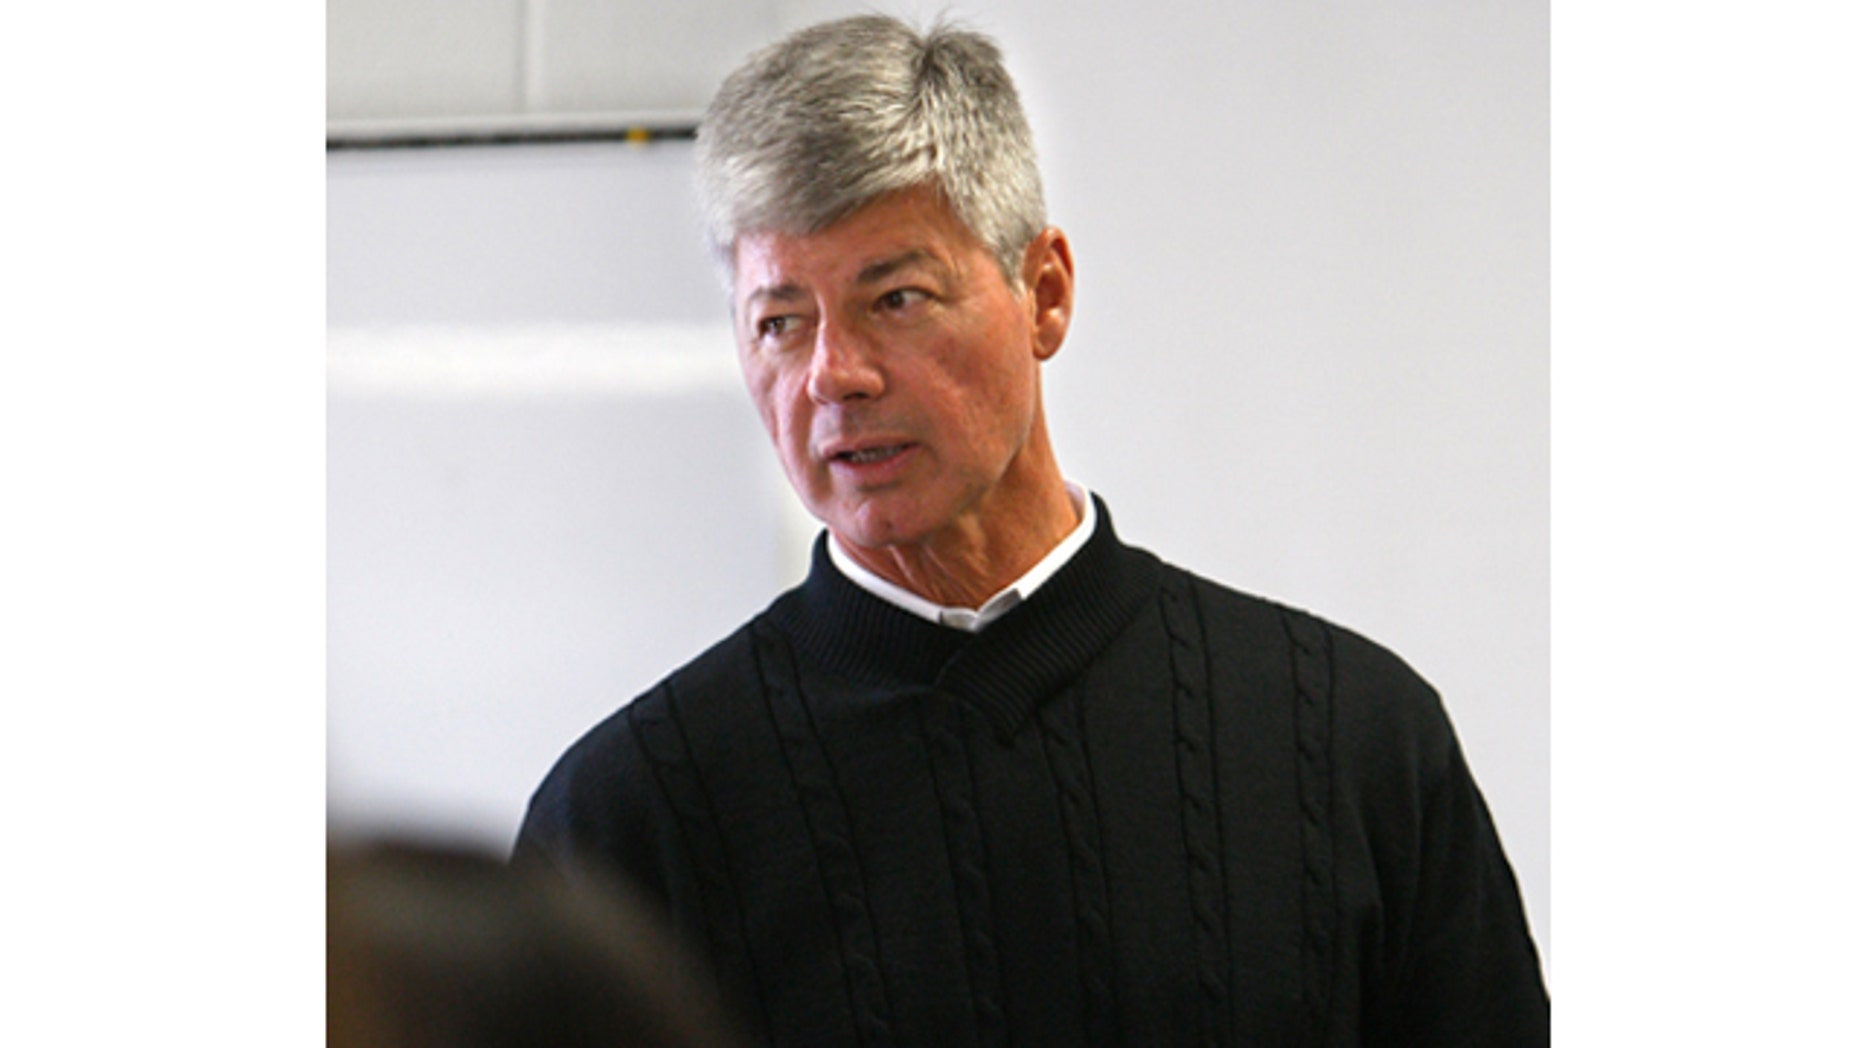 Monday: U.S. Rep. Bart Stupak talks to a class at the Tawas Area High School in Tawas City, Mich.